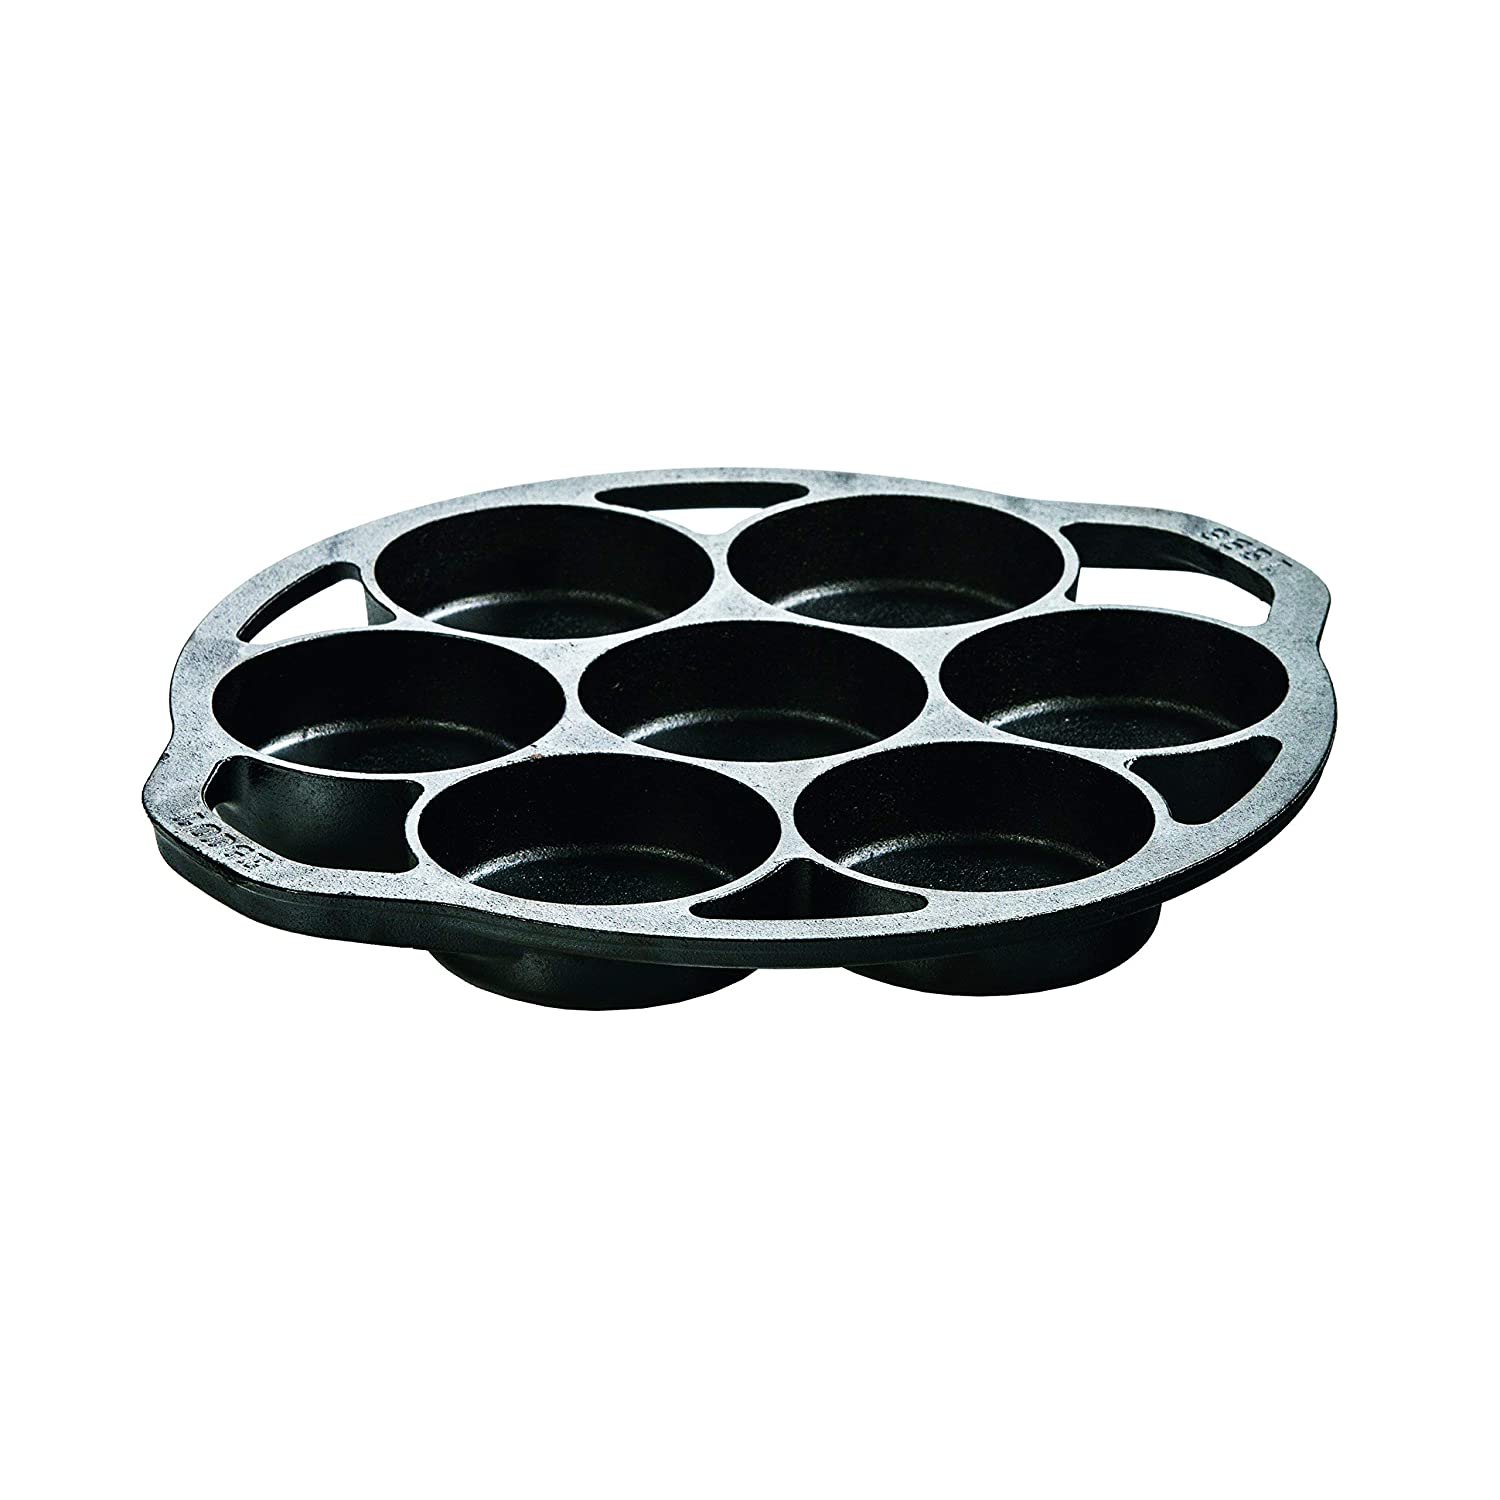 Cast Iron Mini Cake Pan for this campfire dutch oven jalapeno cornbread camping recipe perfect for outdoor cooking and a side dish for your camping meals